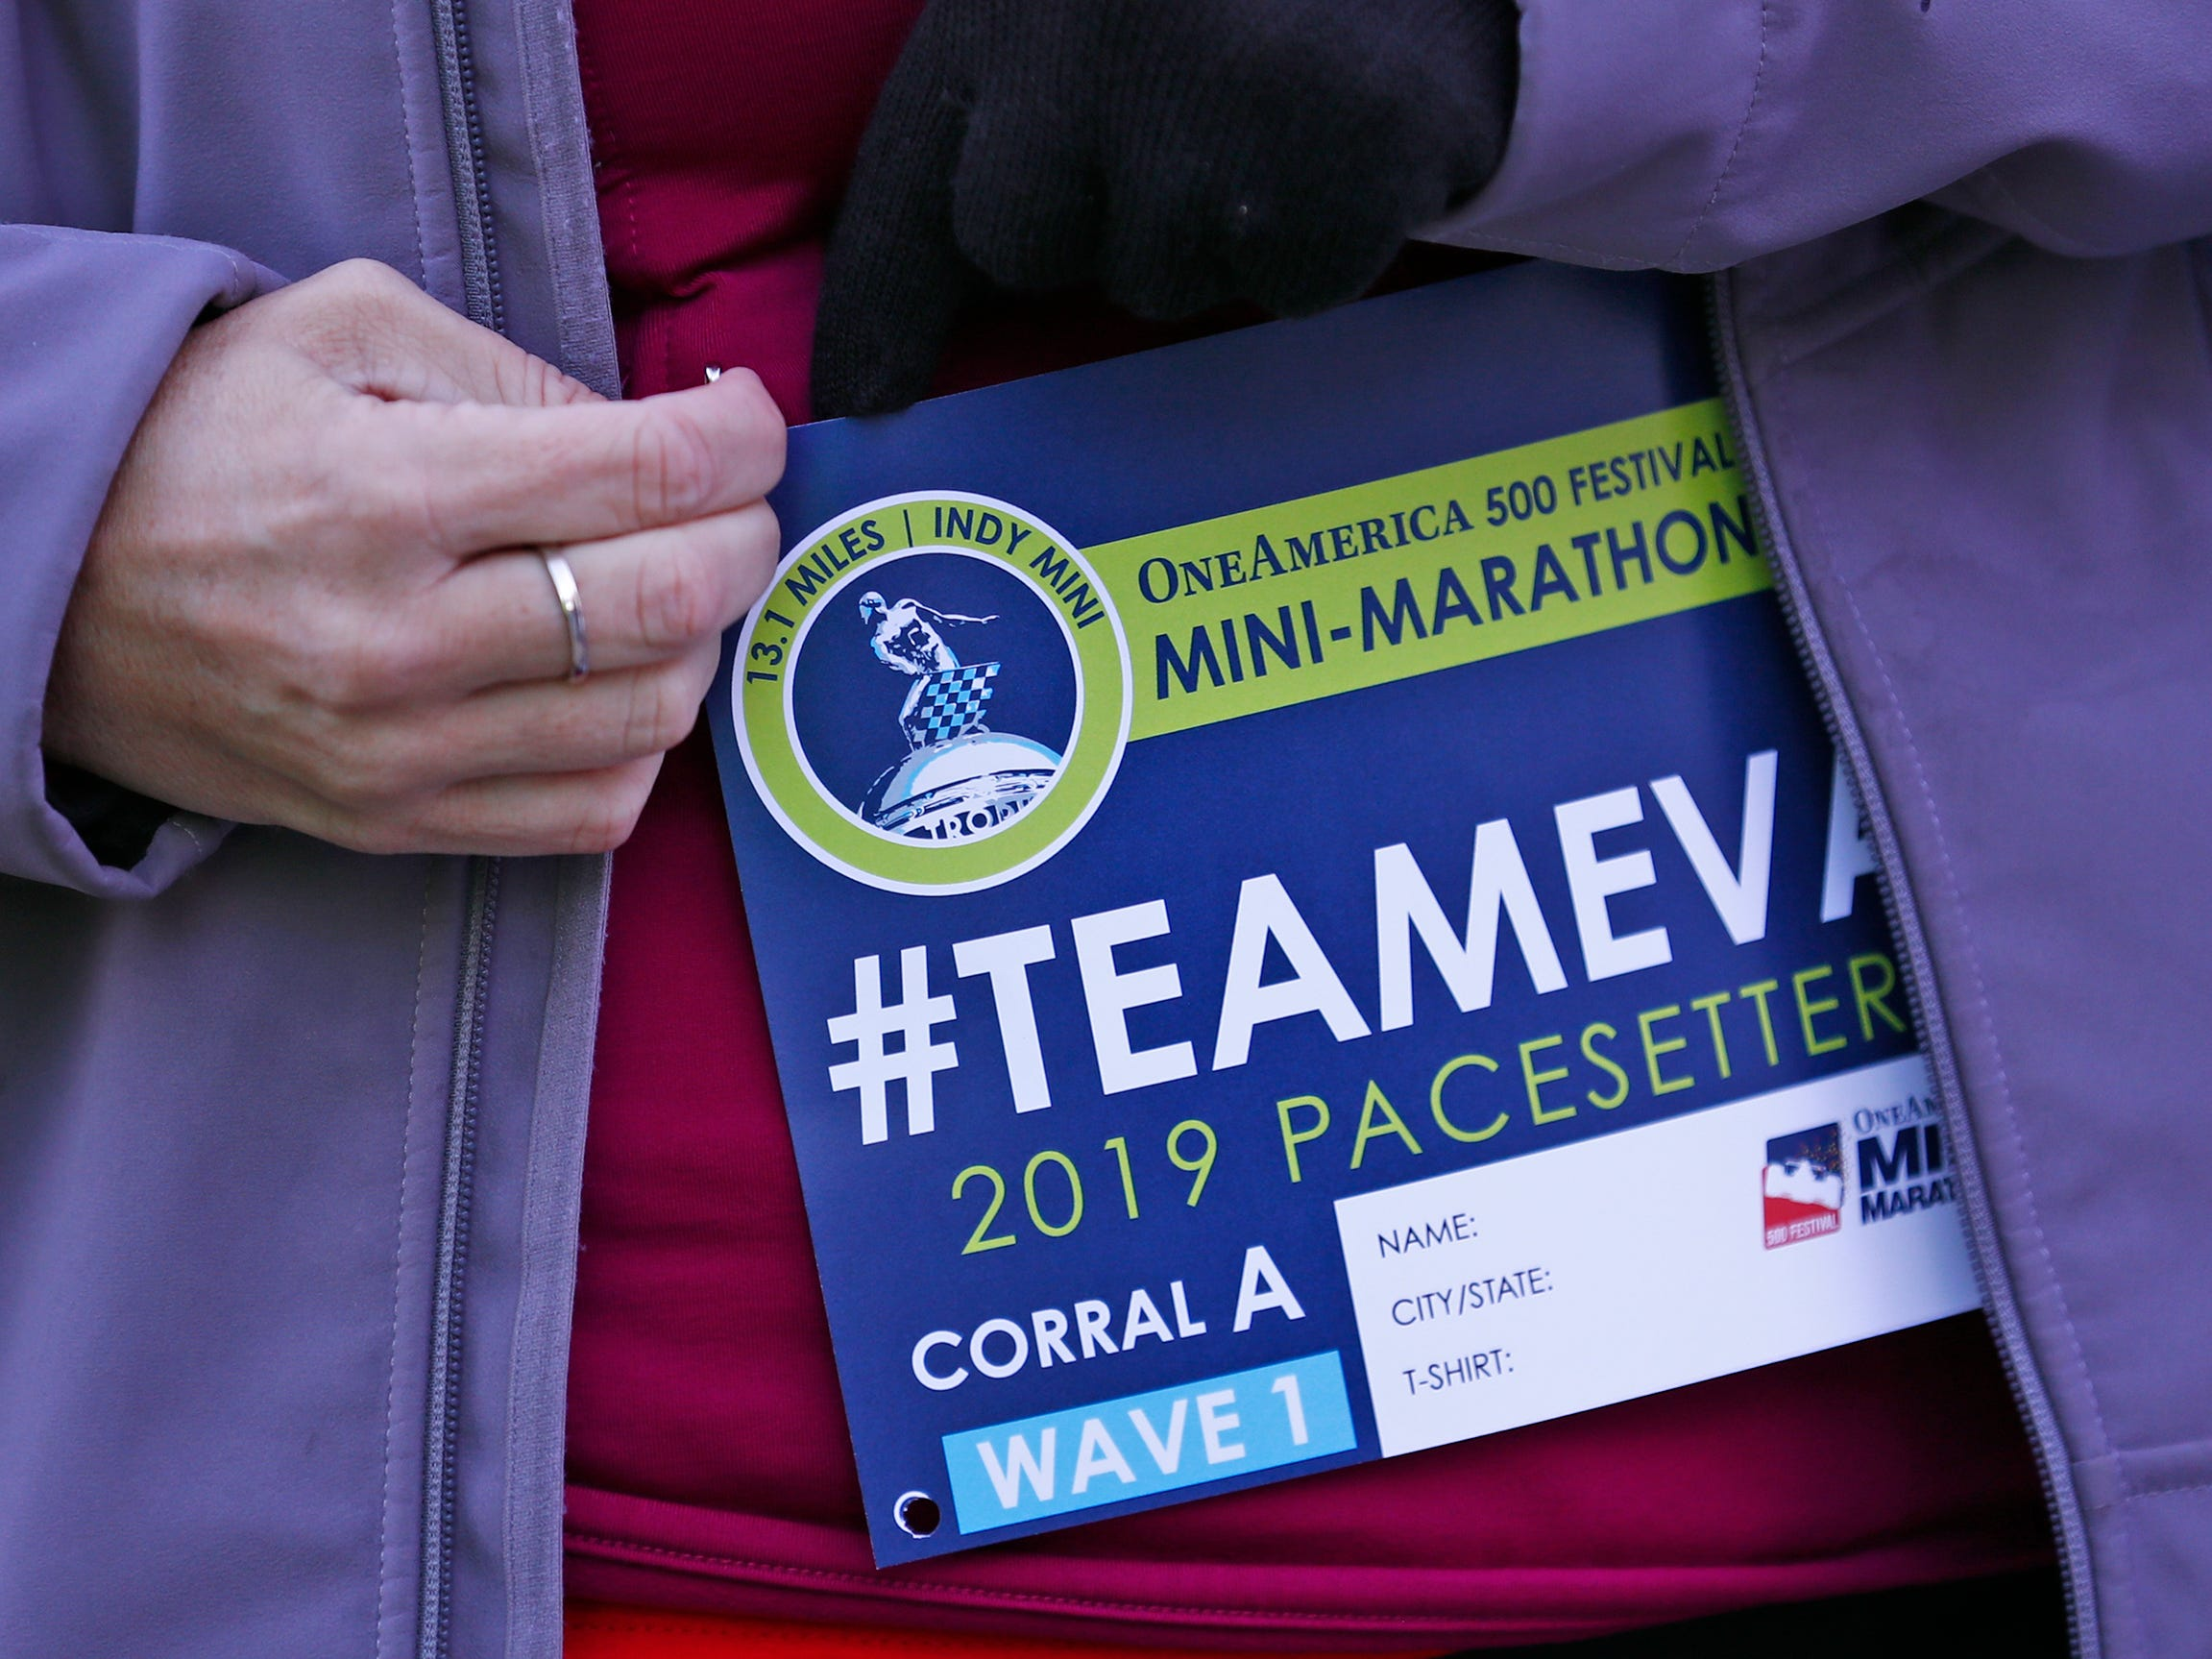 Runners put on Team Eva race bibs before starting the pace-setting run for the 2019 OneAmerica 500 Festival Mini-Marathon, Wednesday, Oct. 24, 2018. The 500 Festival will donate $1 to the CANDLES Holocaust Museum in Terre Haute for every mini-marathon participant who finishes the 2019 race in a better time than Team Eva.  Holocaust survivor Eva Kor joined the fun at the Indianapolis Motor Speedway's Yard of Bricks and ran the very last part of the race.